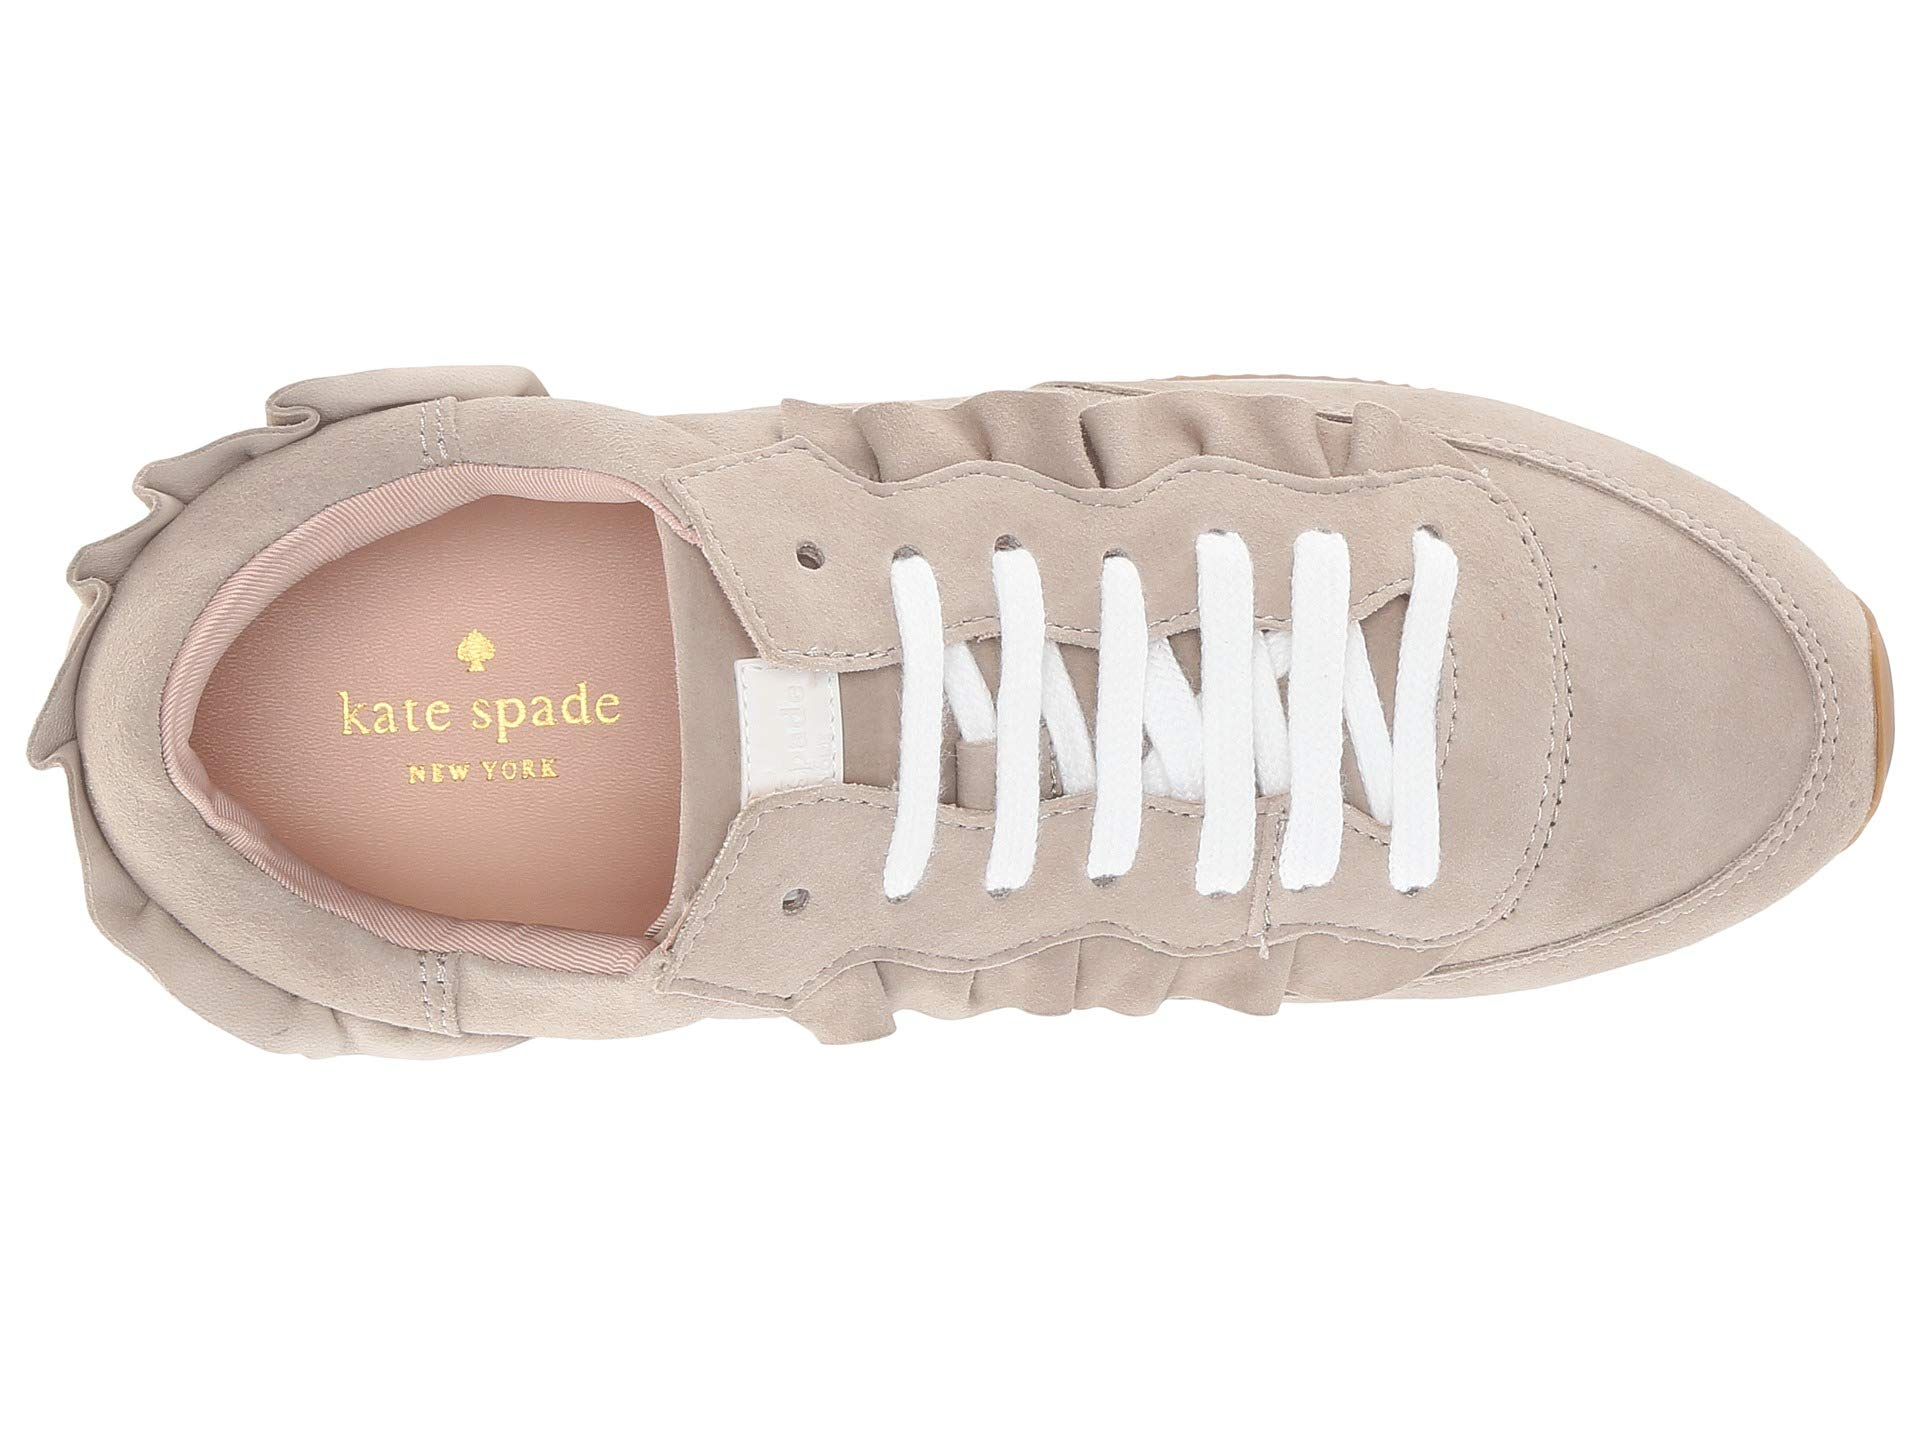 f2fb84025aef Kate Spade New York Fariah Sneaker at Luxury.Zappos.com